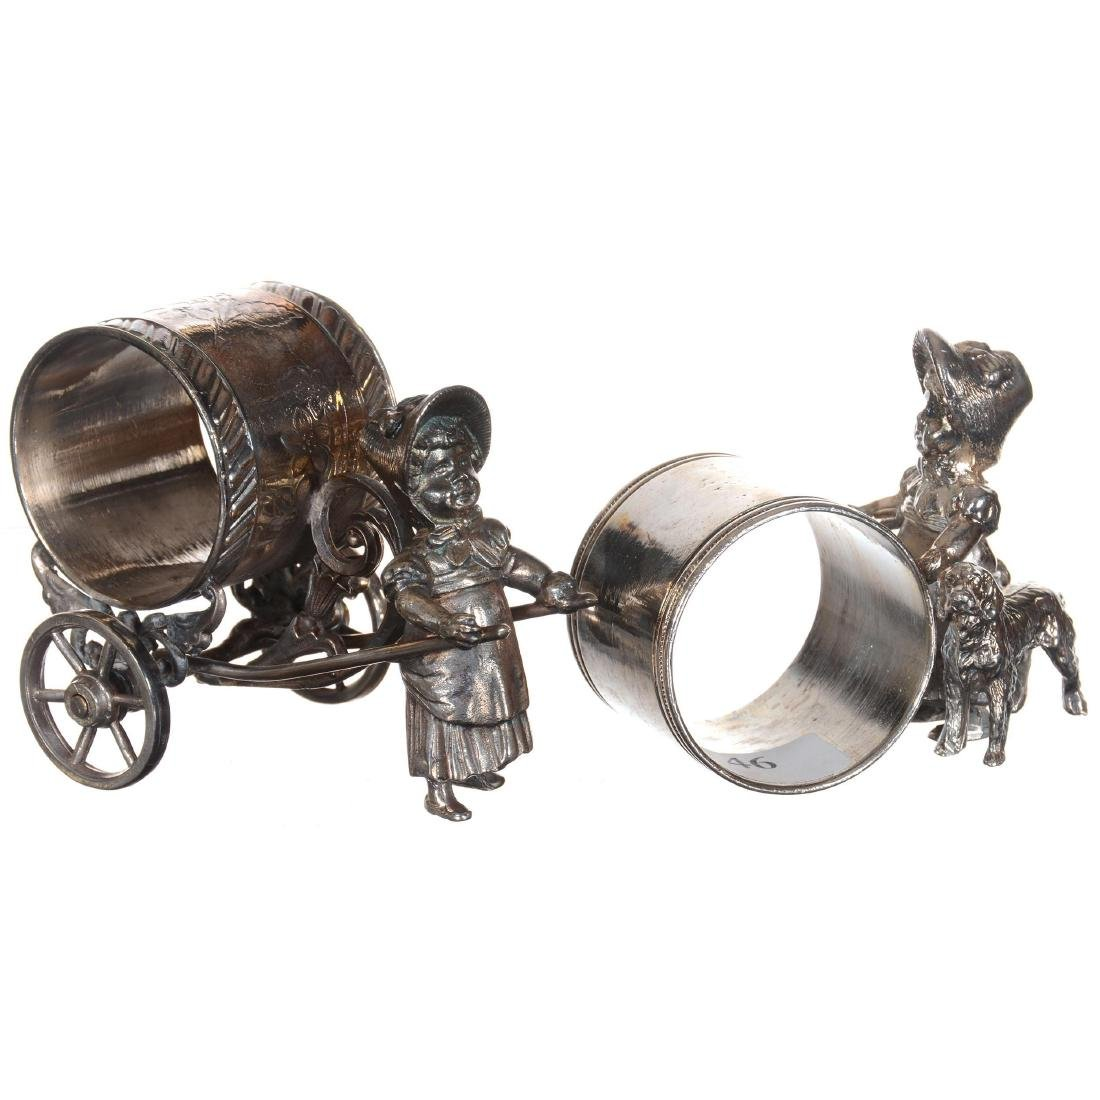 Two Silver-plate Napkin Rings